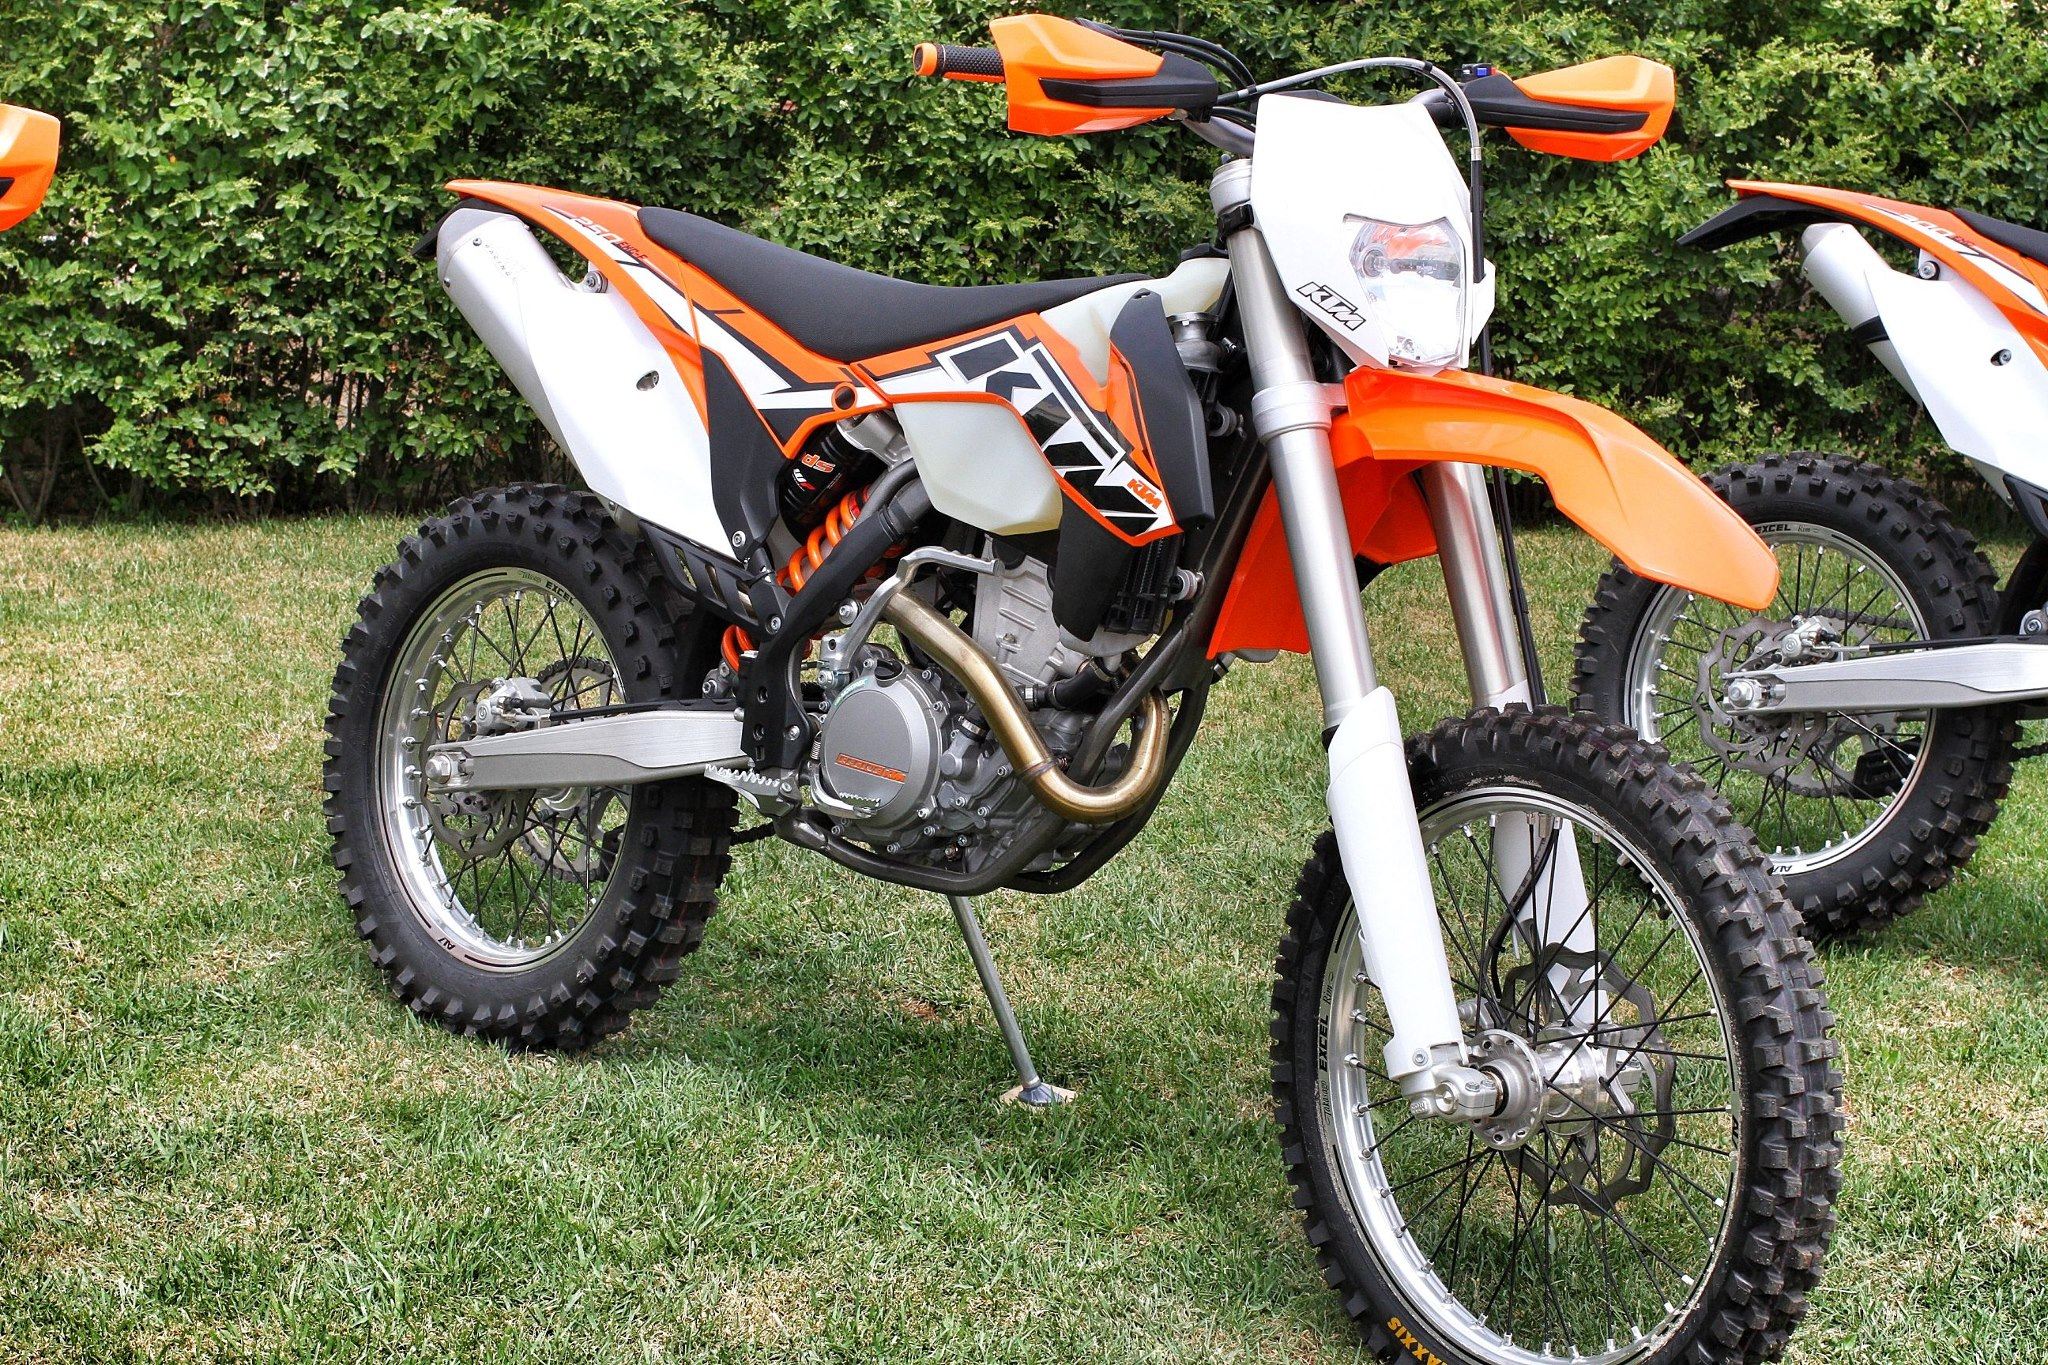 2014 KTM 250EXC-F Specifications